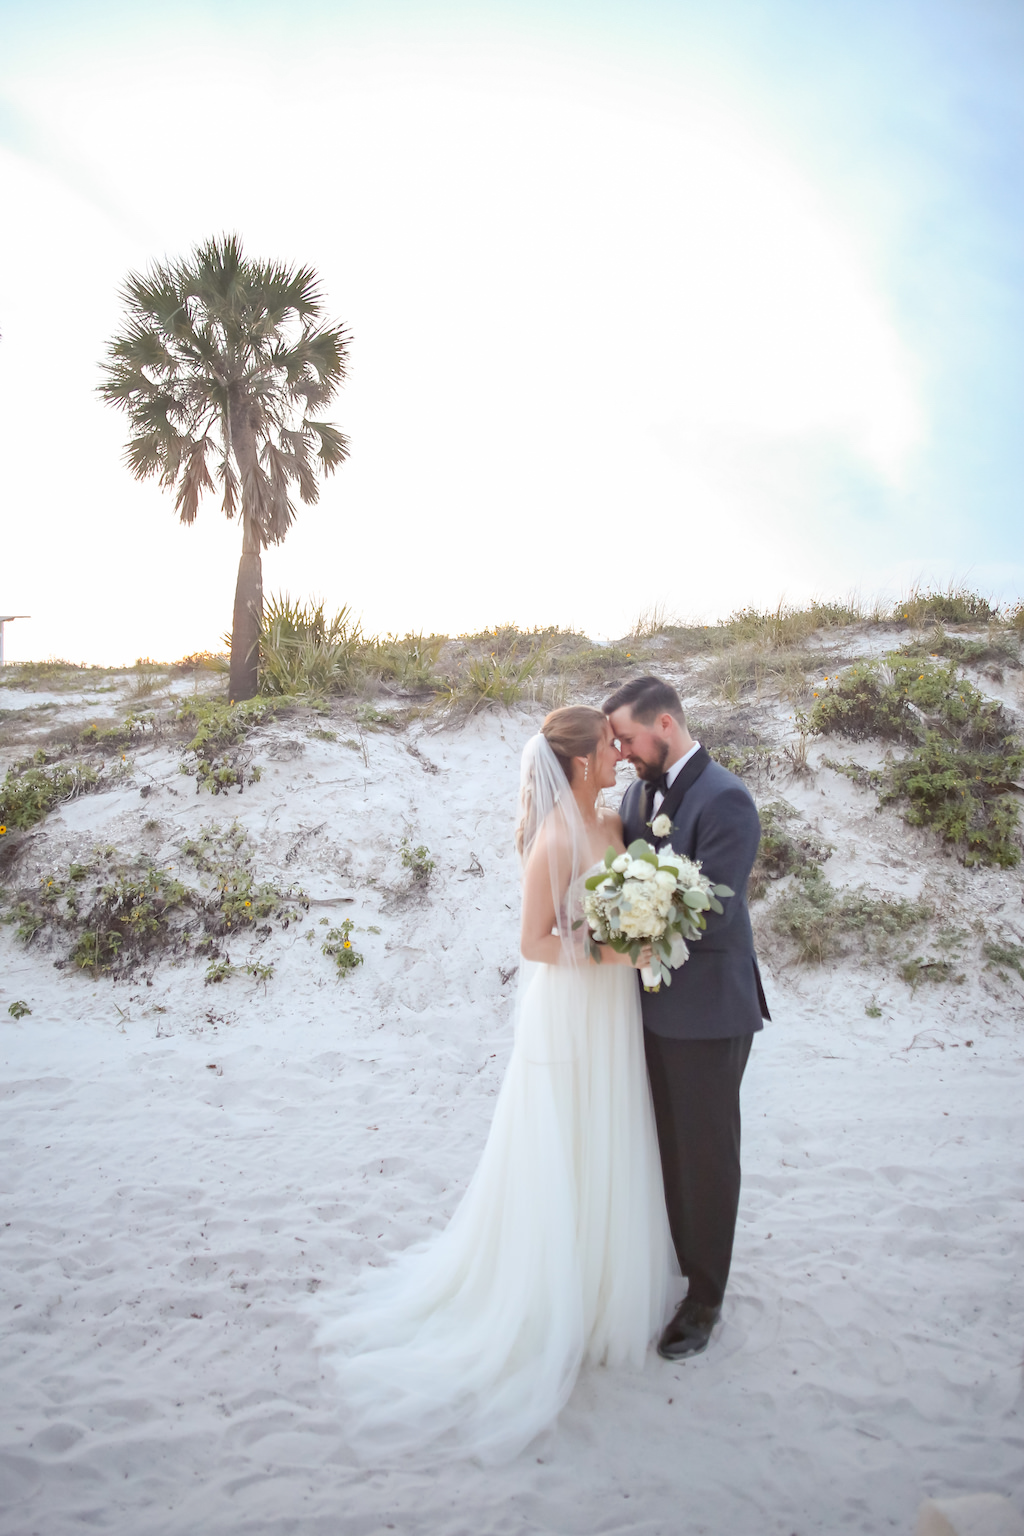 7907aab1b9 Outdoor Beach Wedding Portrait, Bride with White Floral and Greenery  Bouquet, Groom in Gray and Black Suit with Boutonniere | Tampa Bay Wedding  Photographer ...